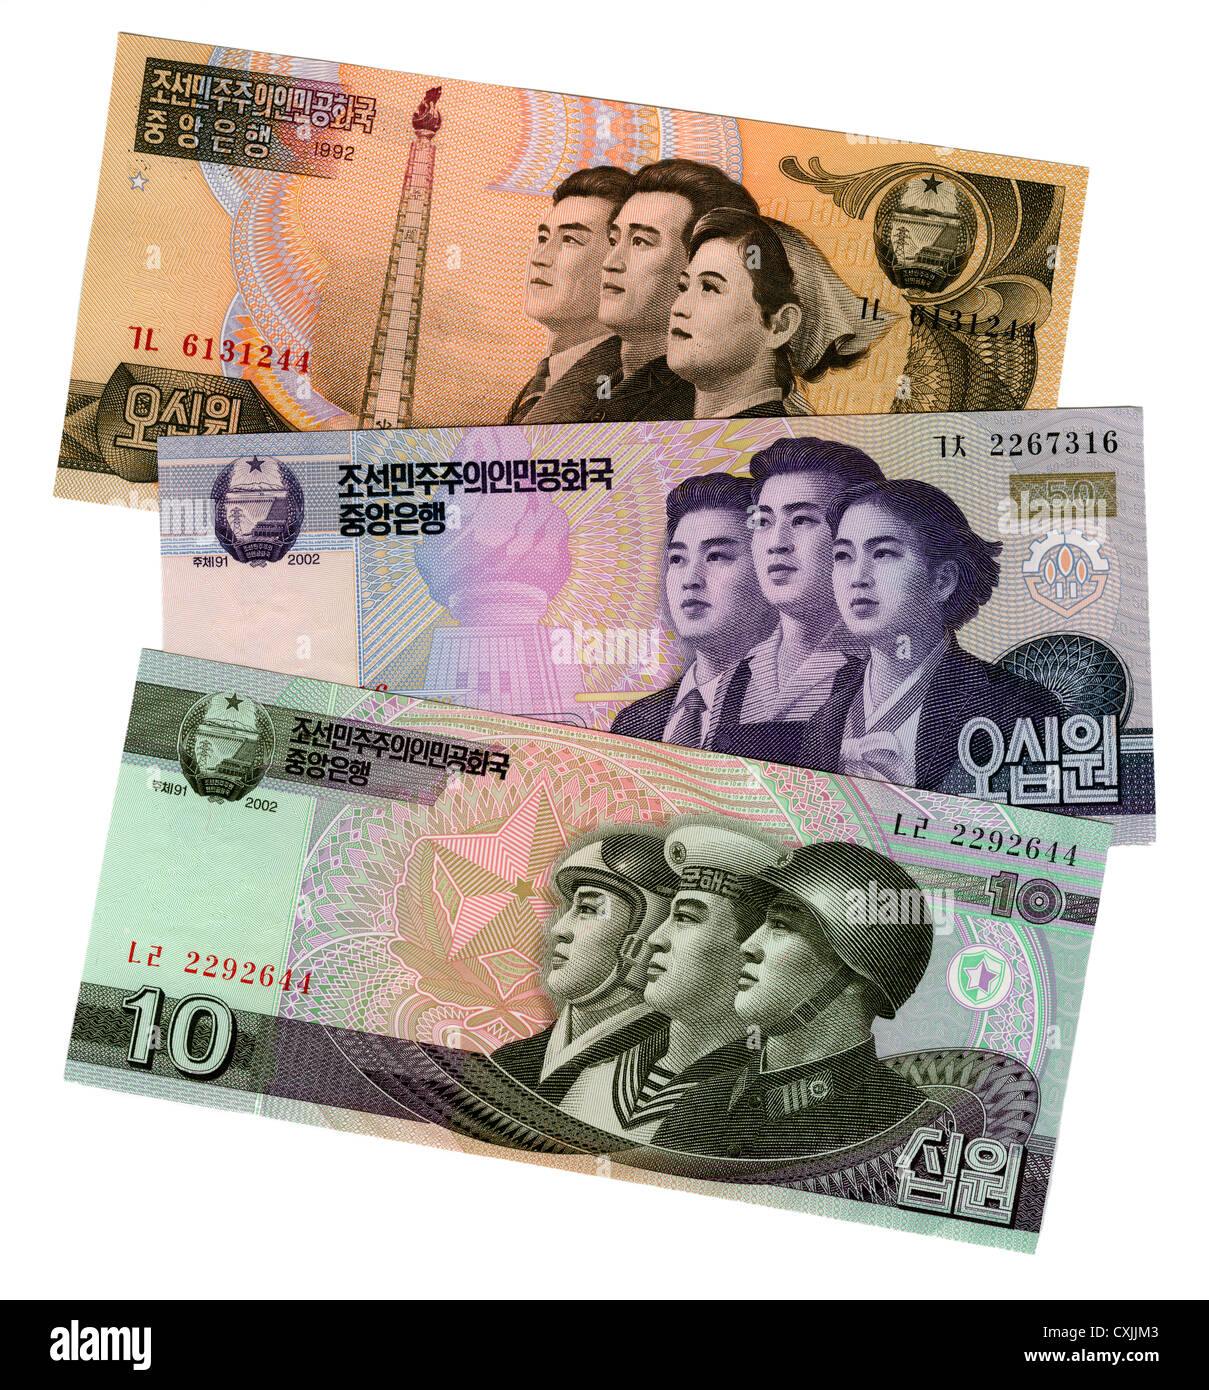 North Korean Banknotes showing Communist propaganda images of citizens, workers and armed forces. - Stock Image